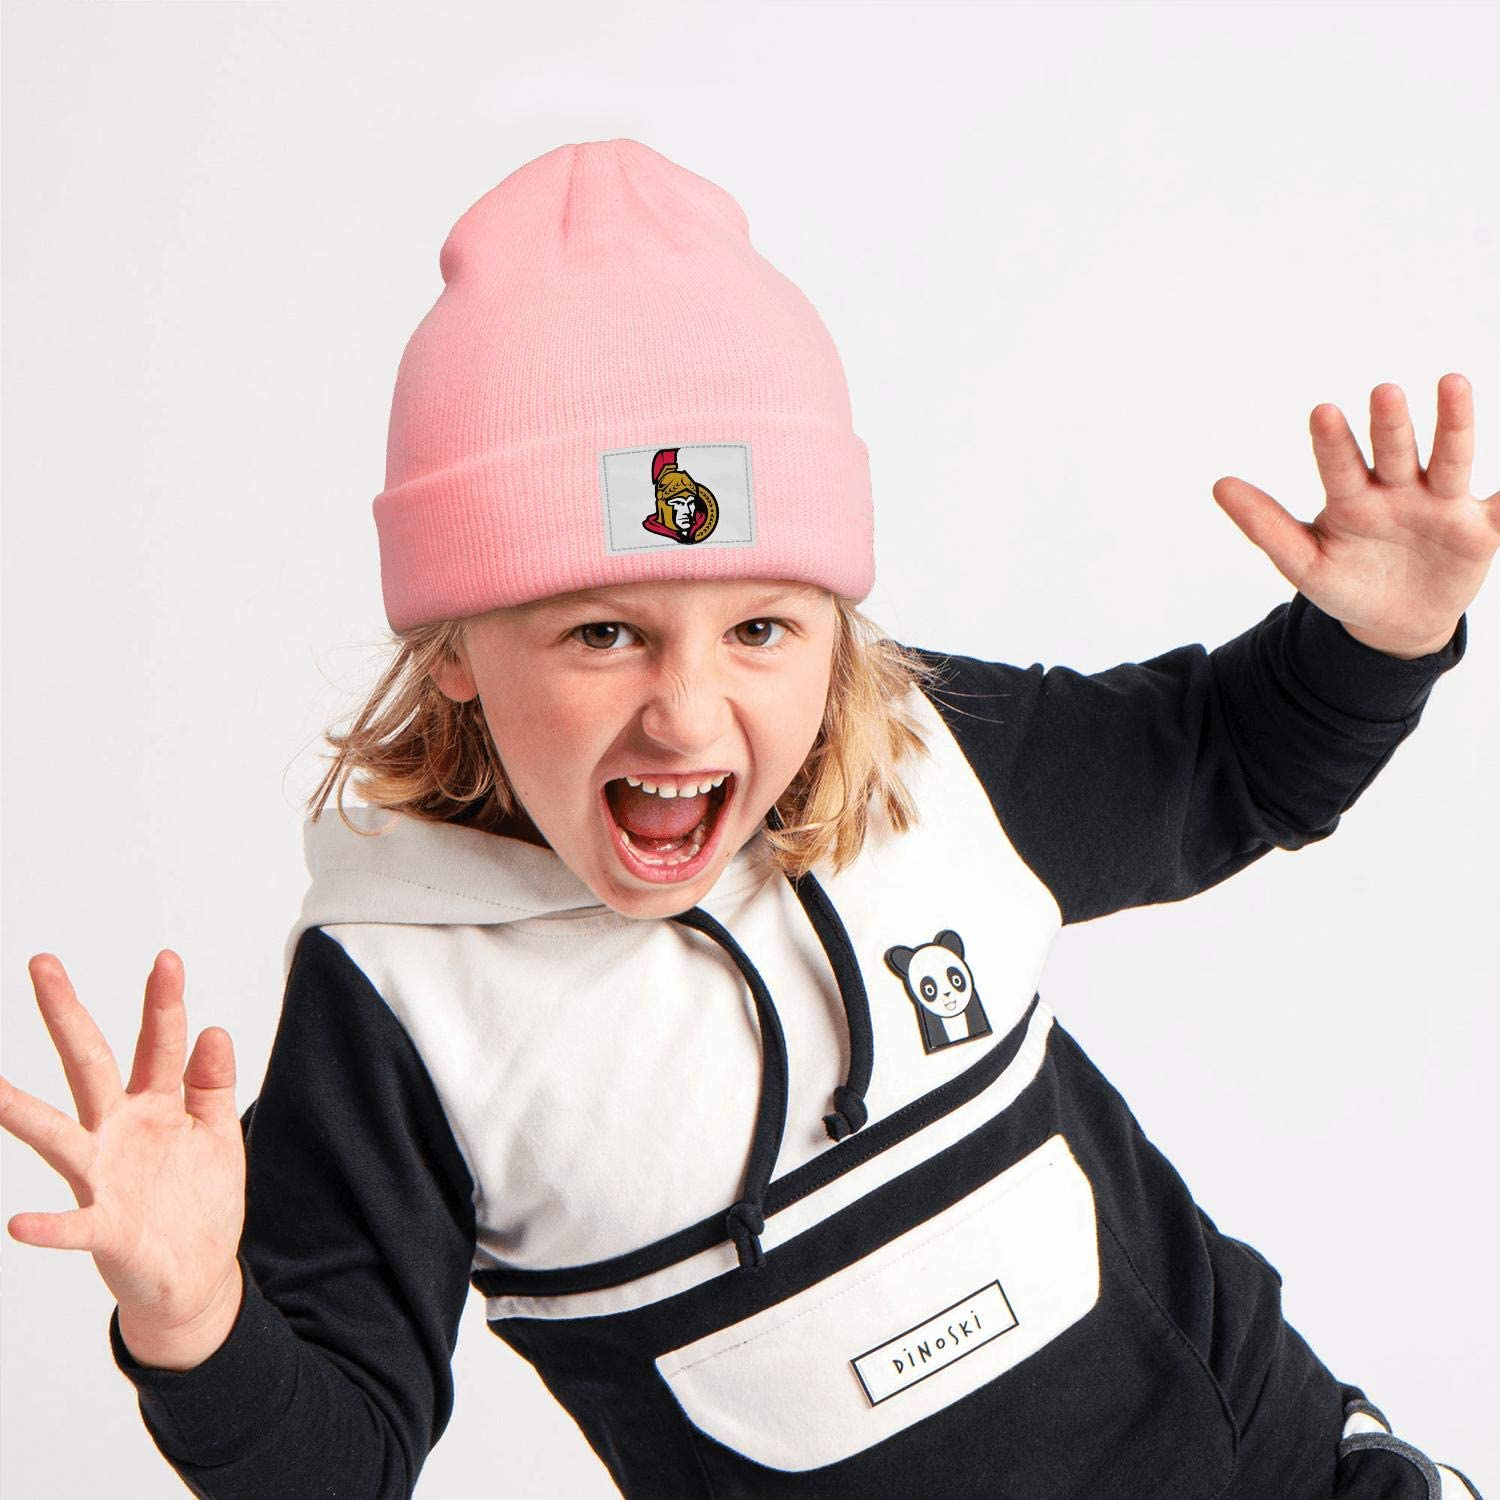 Style Pink Beanie Hat for Boys Girls Kids Winter Knit Cap Leisure Stretchy Pittsburgh-Penguins-Jack-McGregor